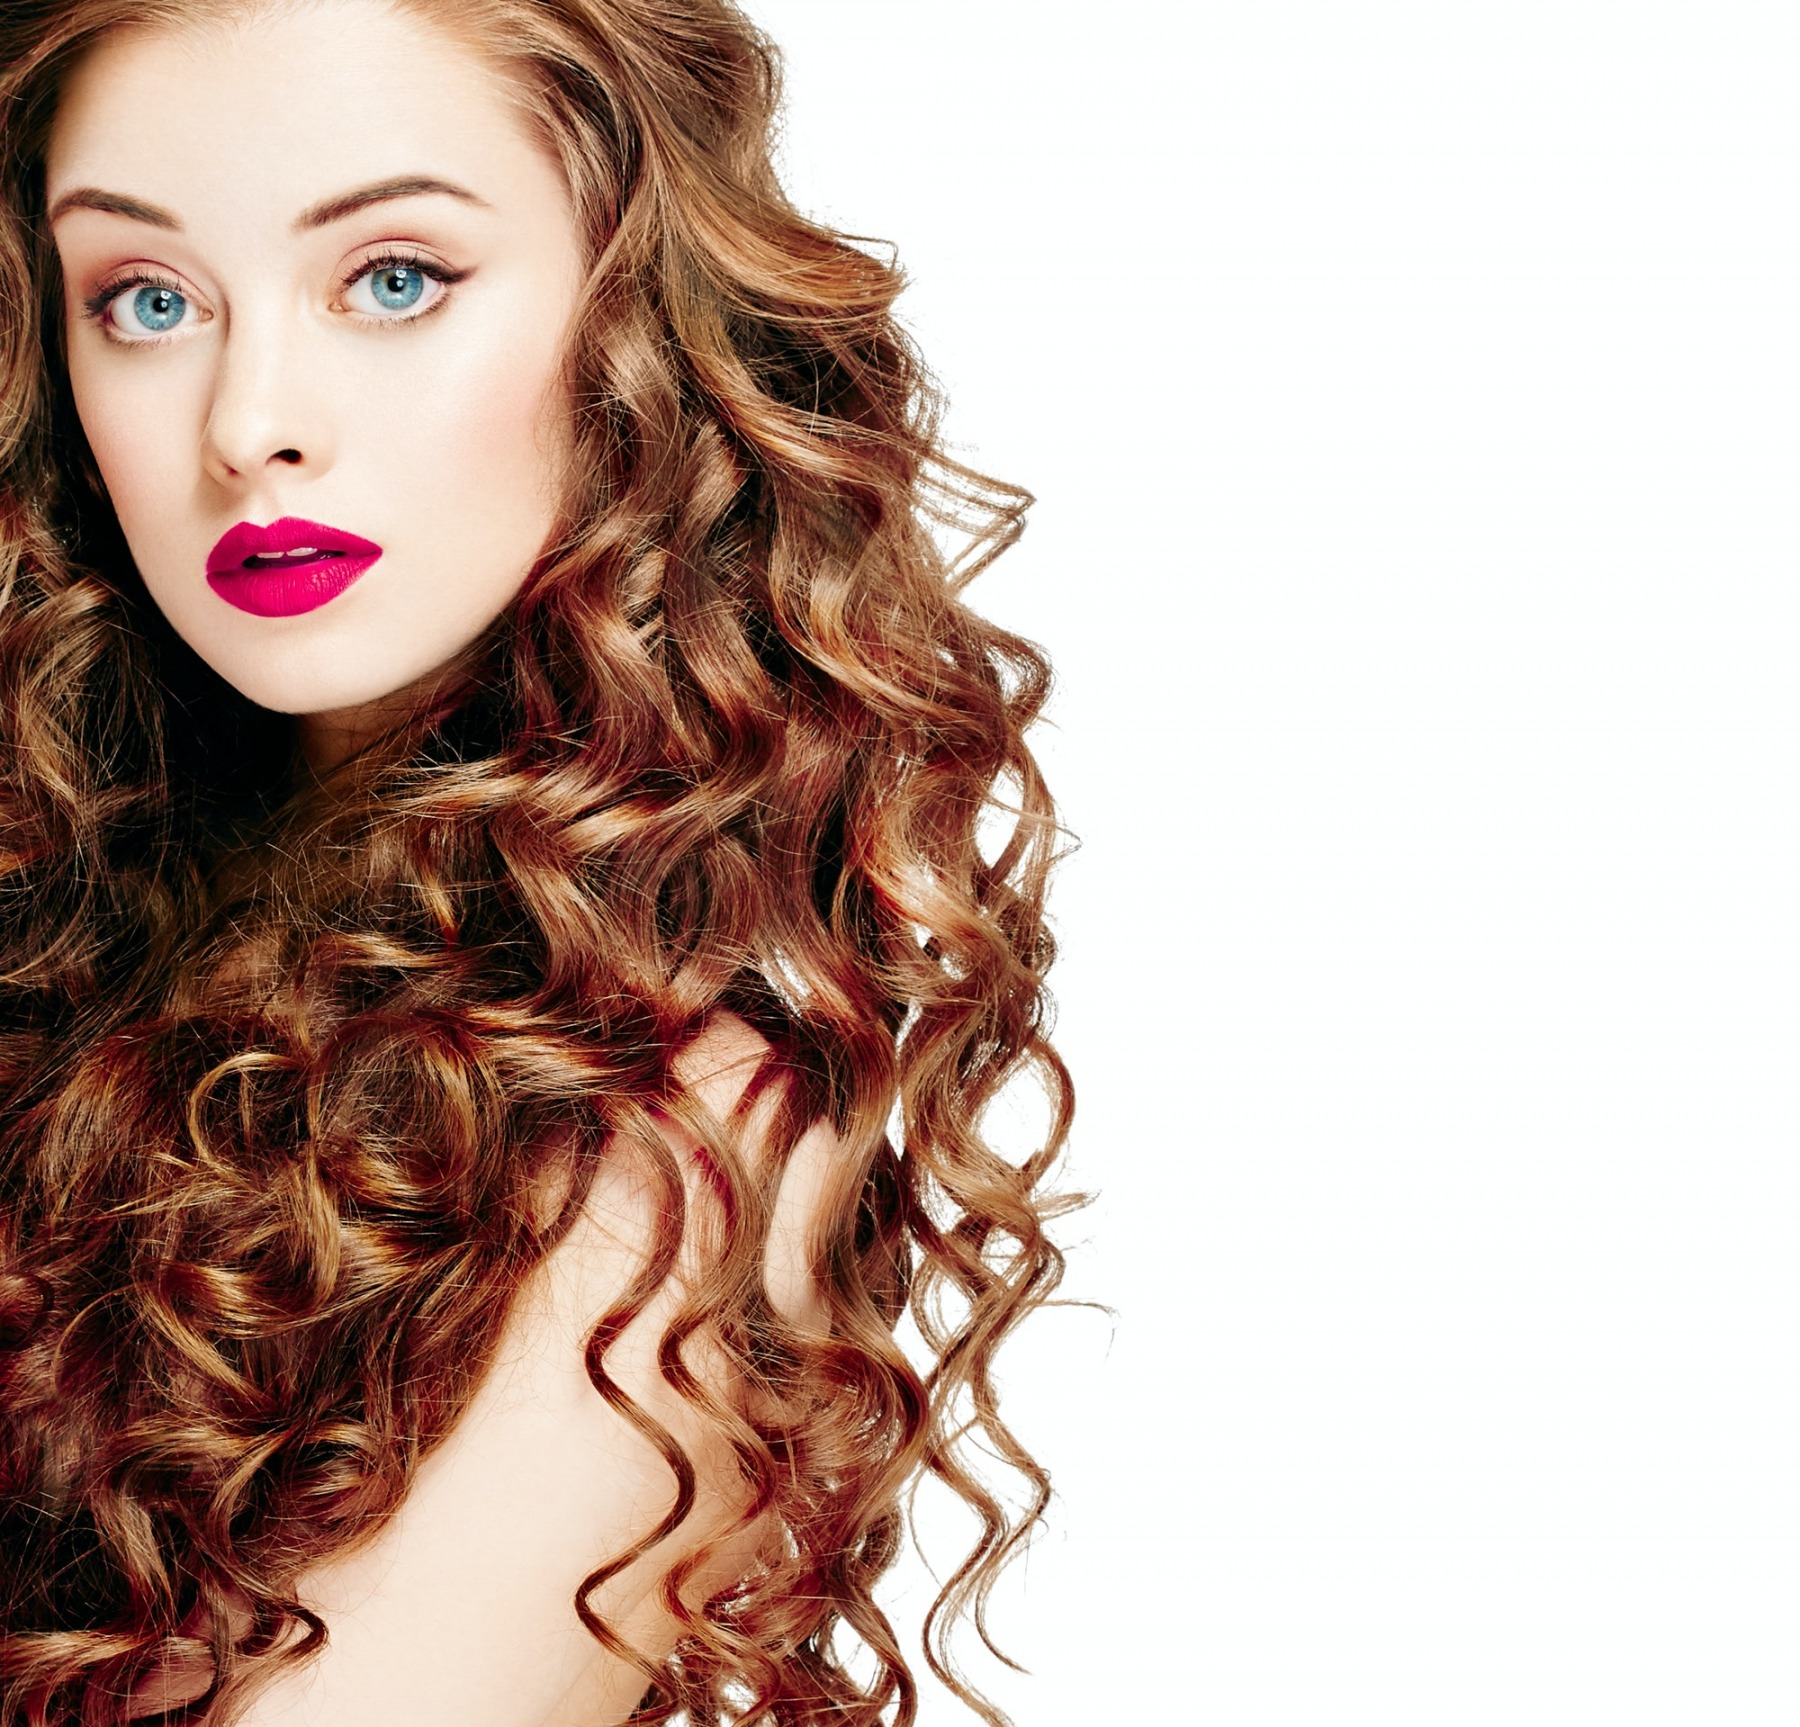 Curly hair woman beauty red lips perfect curly